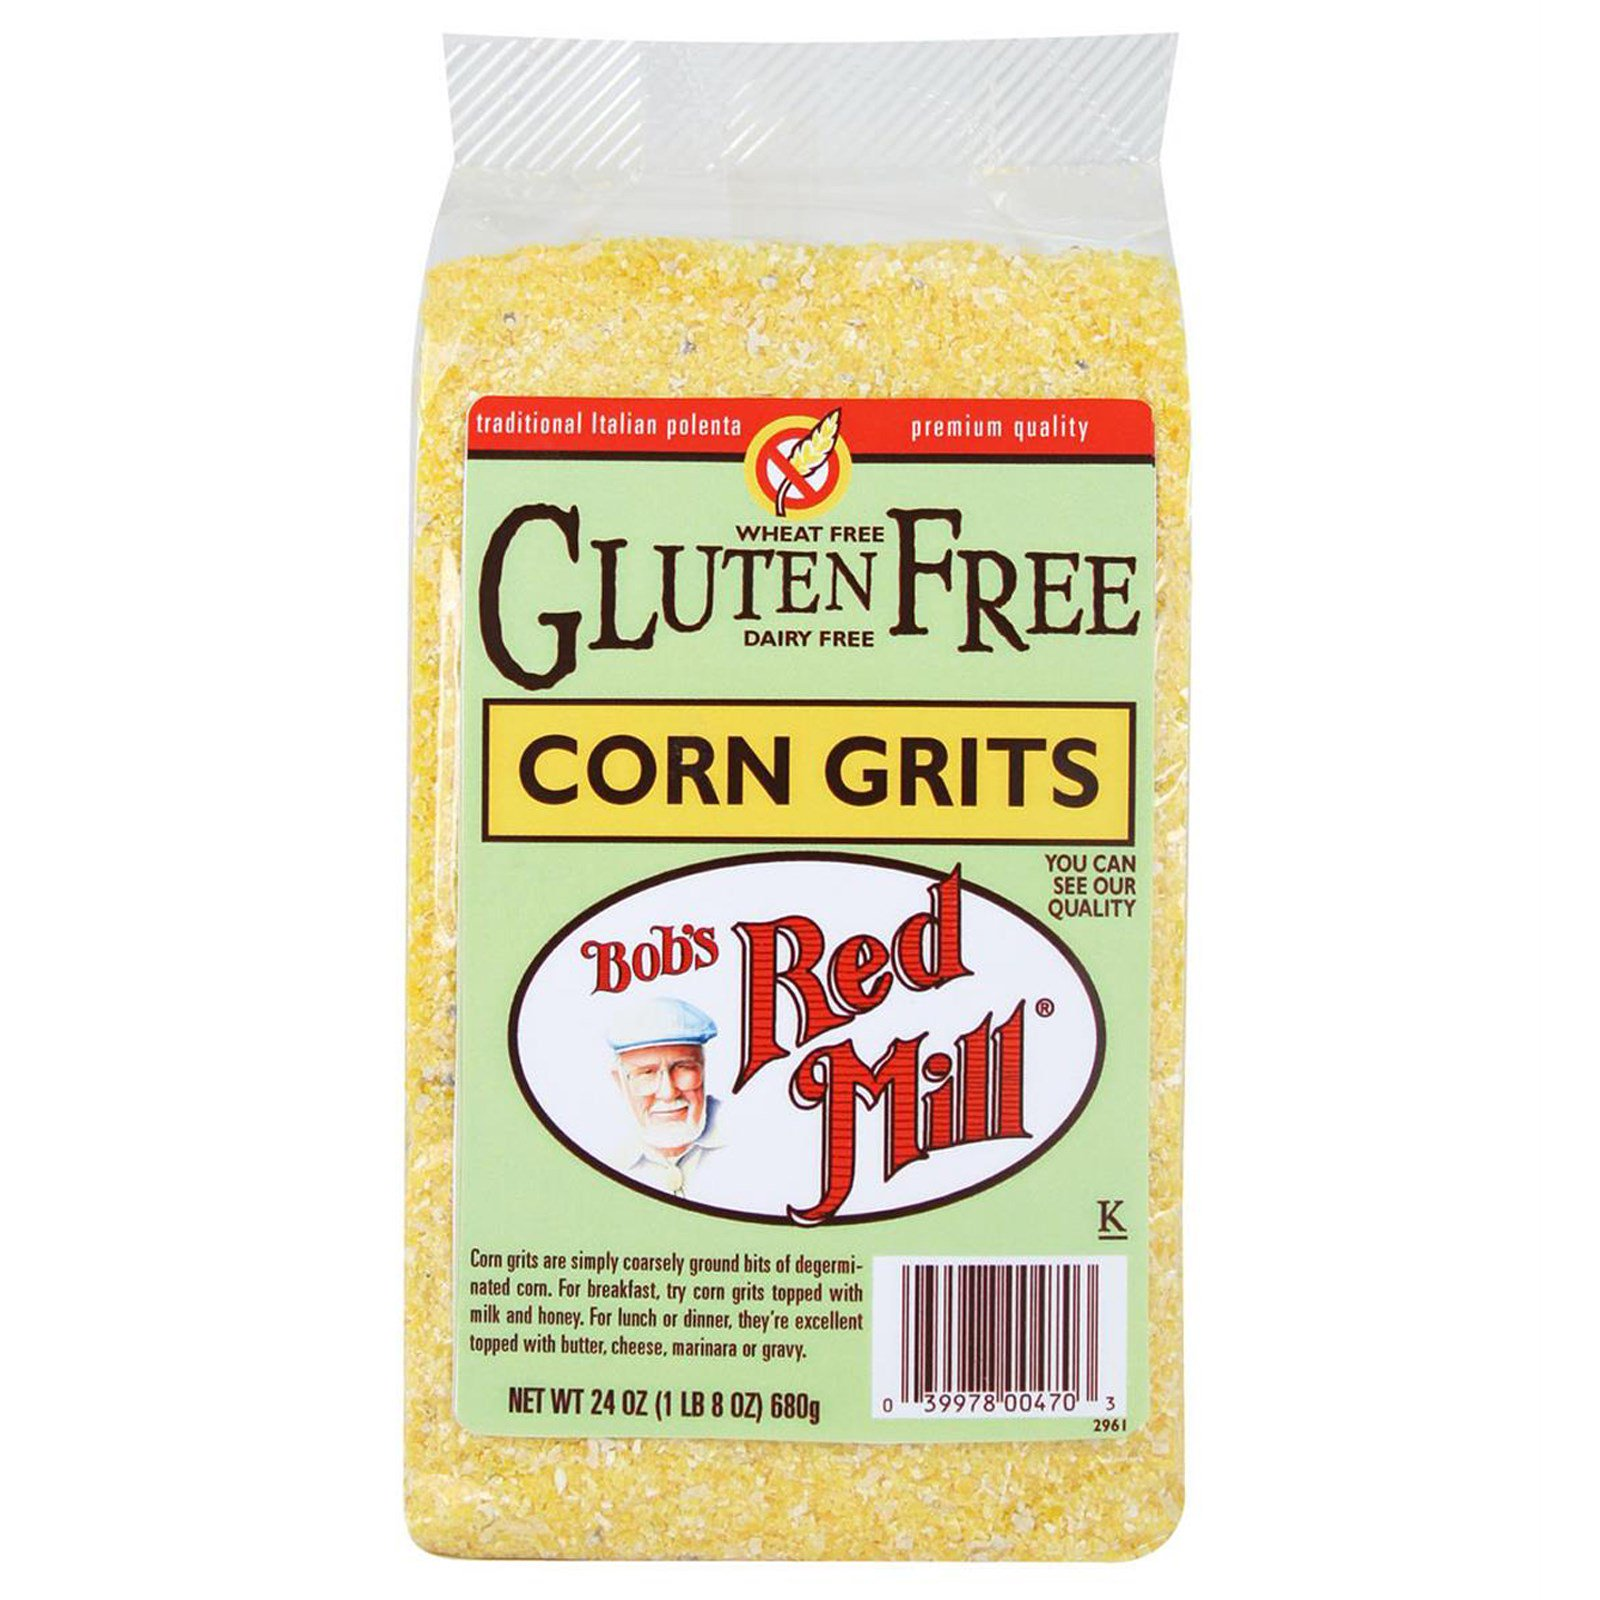 Do grits have gluten in them